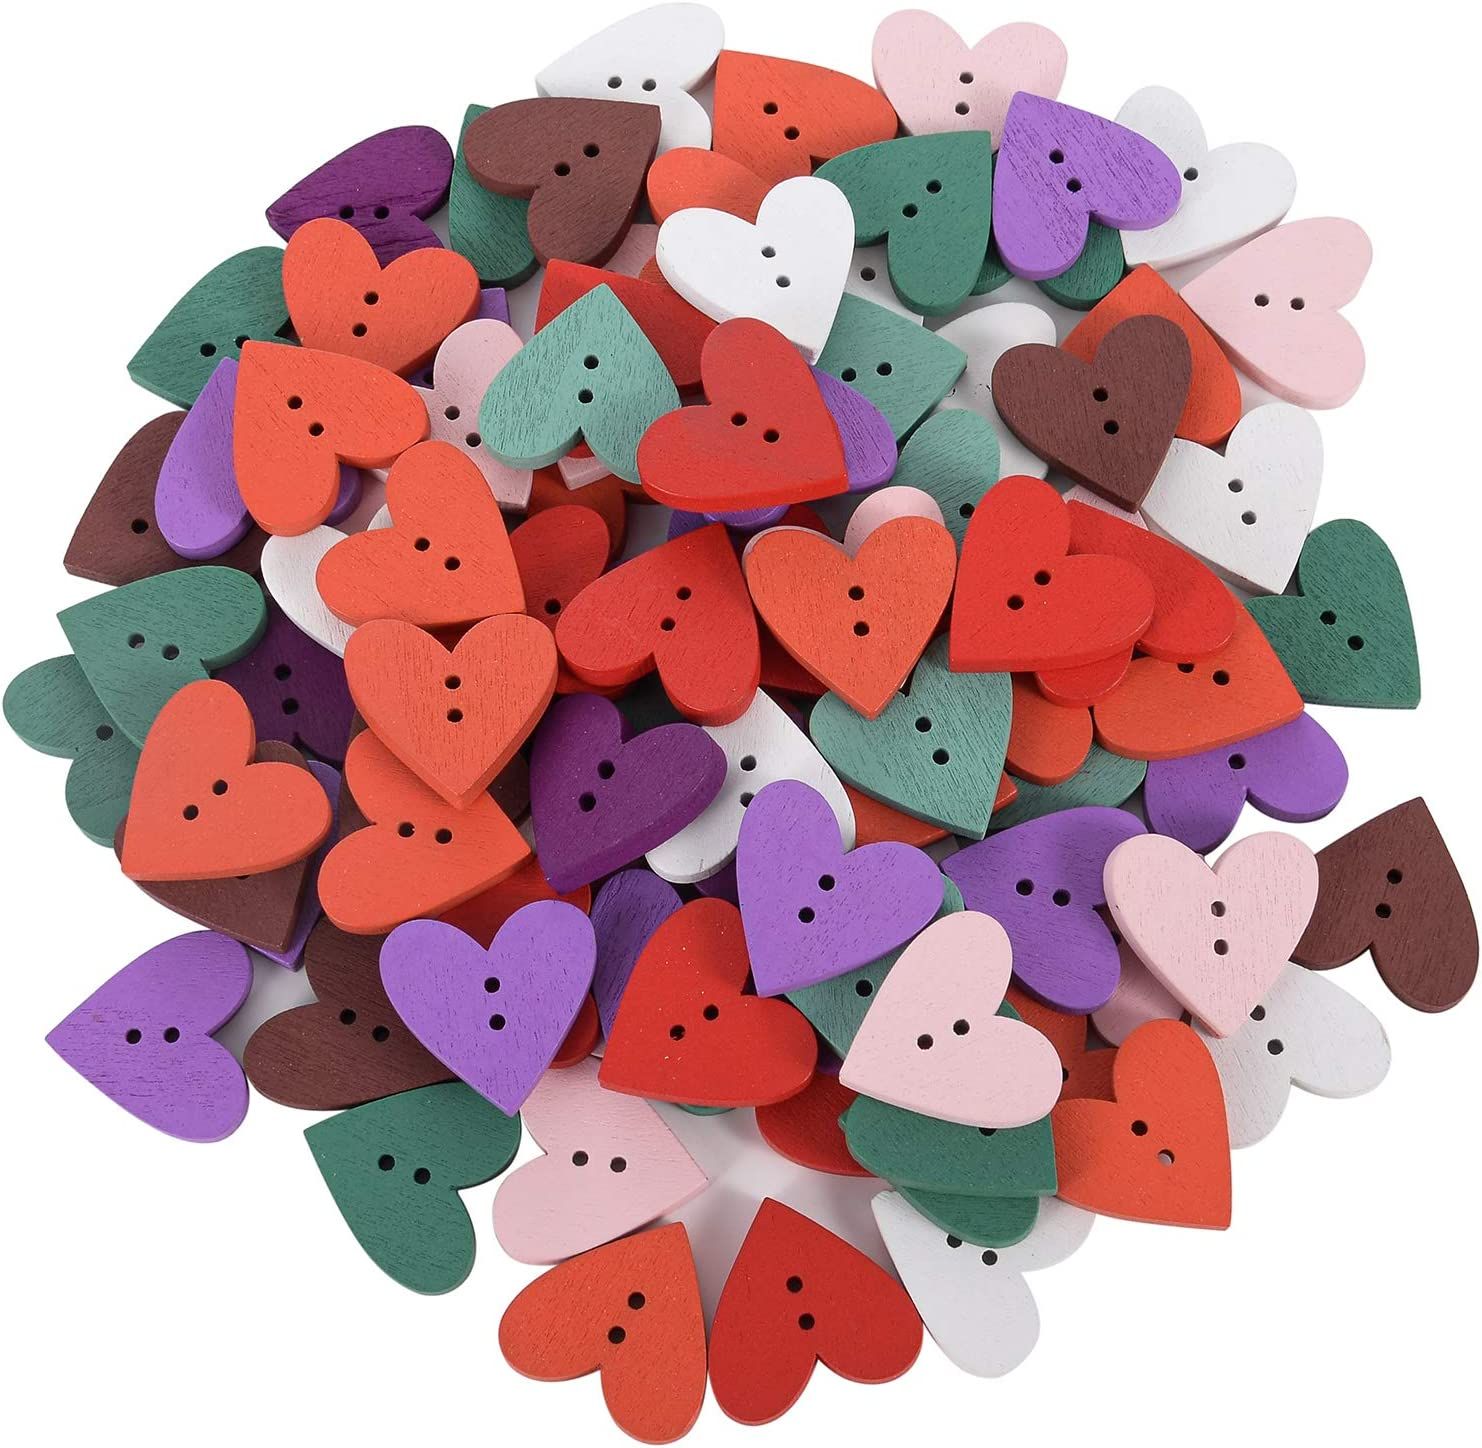 Large discharge sale HOUSWEETY 200PCs Wood Max 89% OFF Sewing Buttons Heart Wooden Love